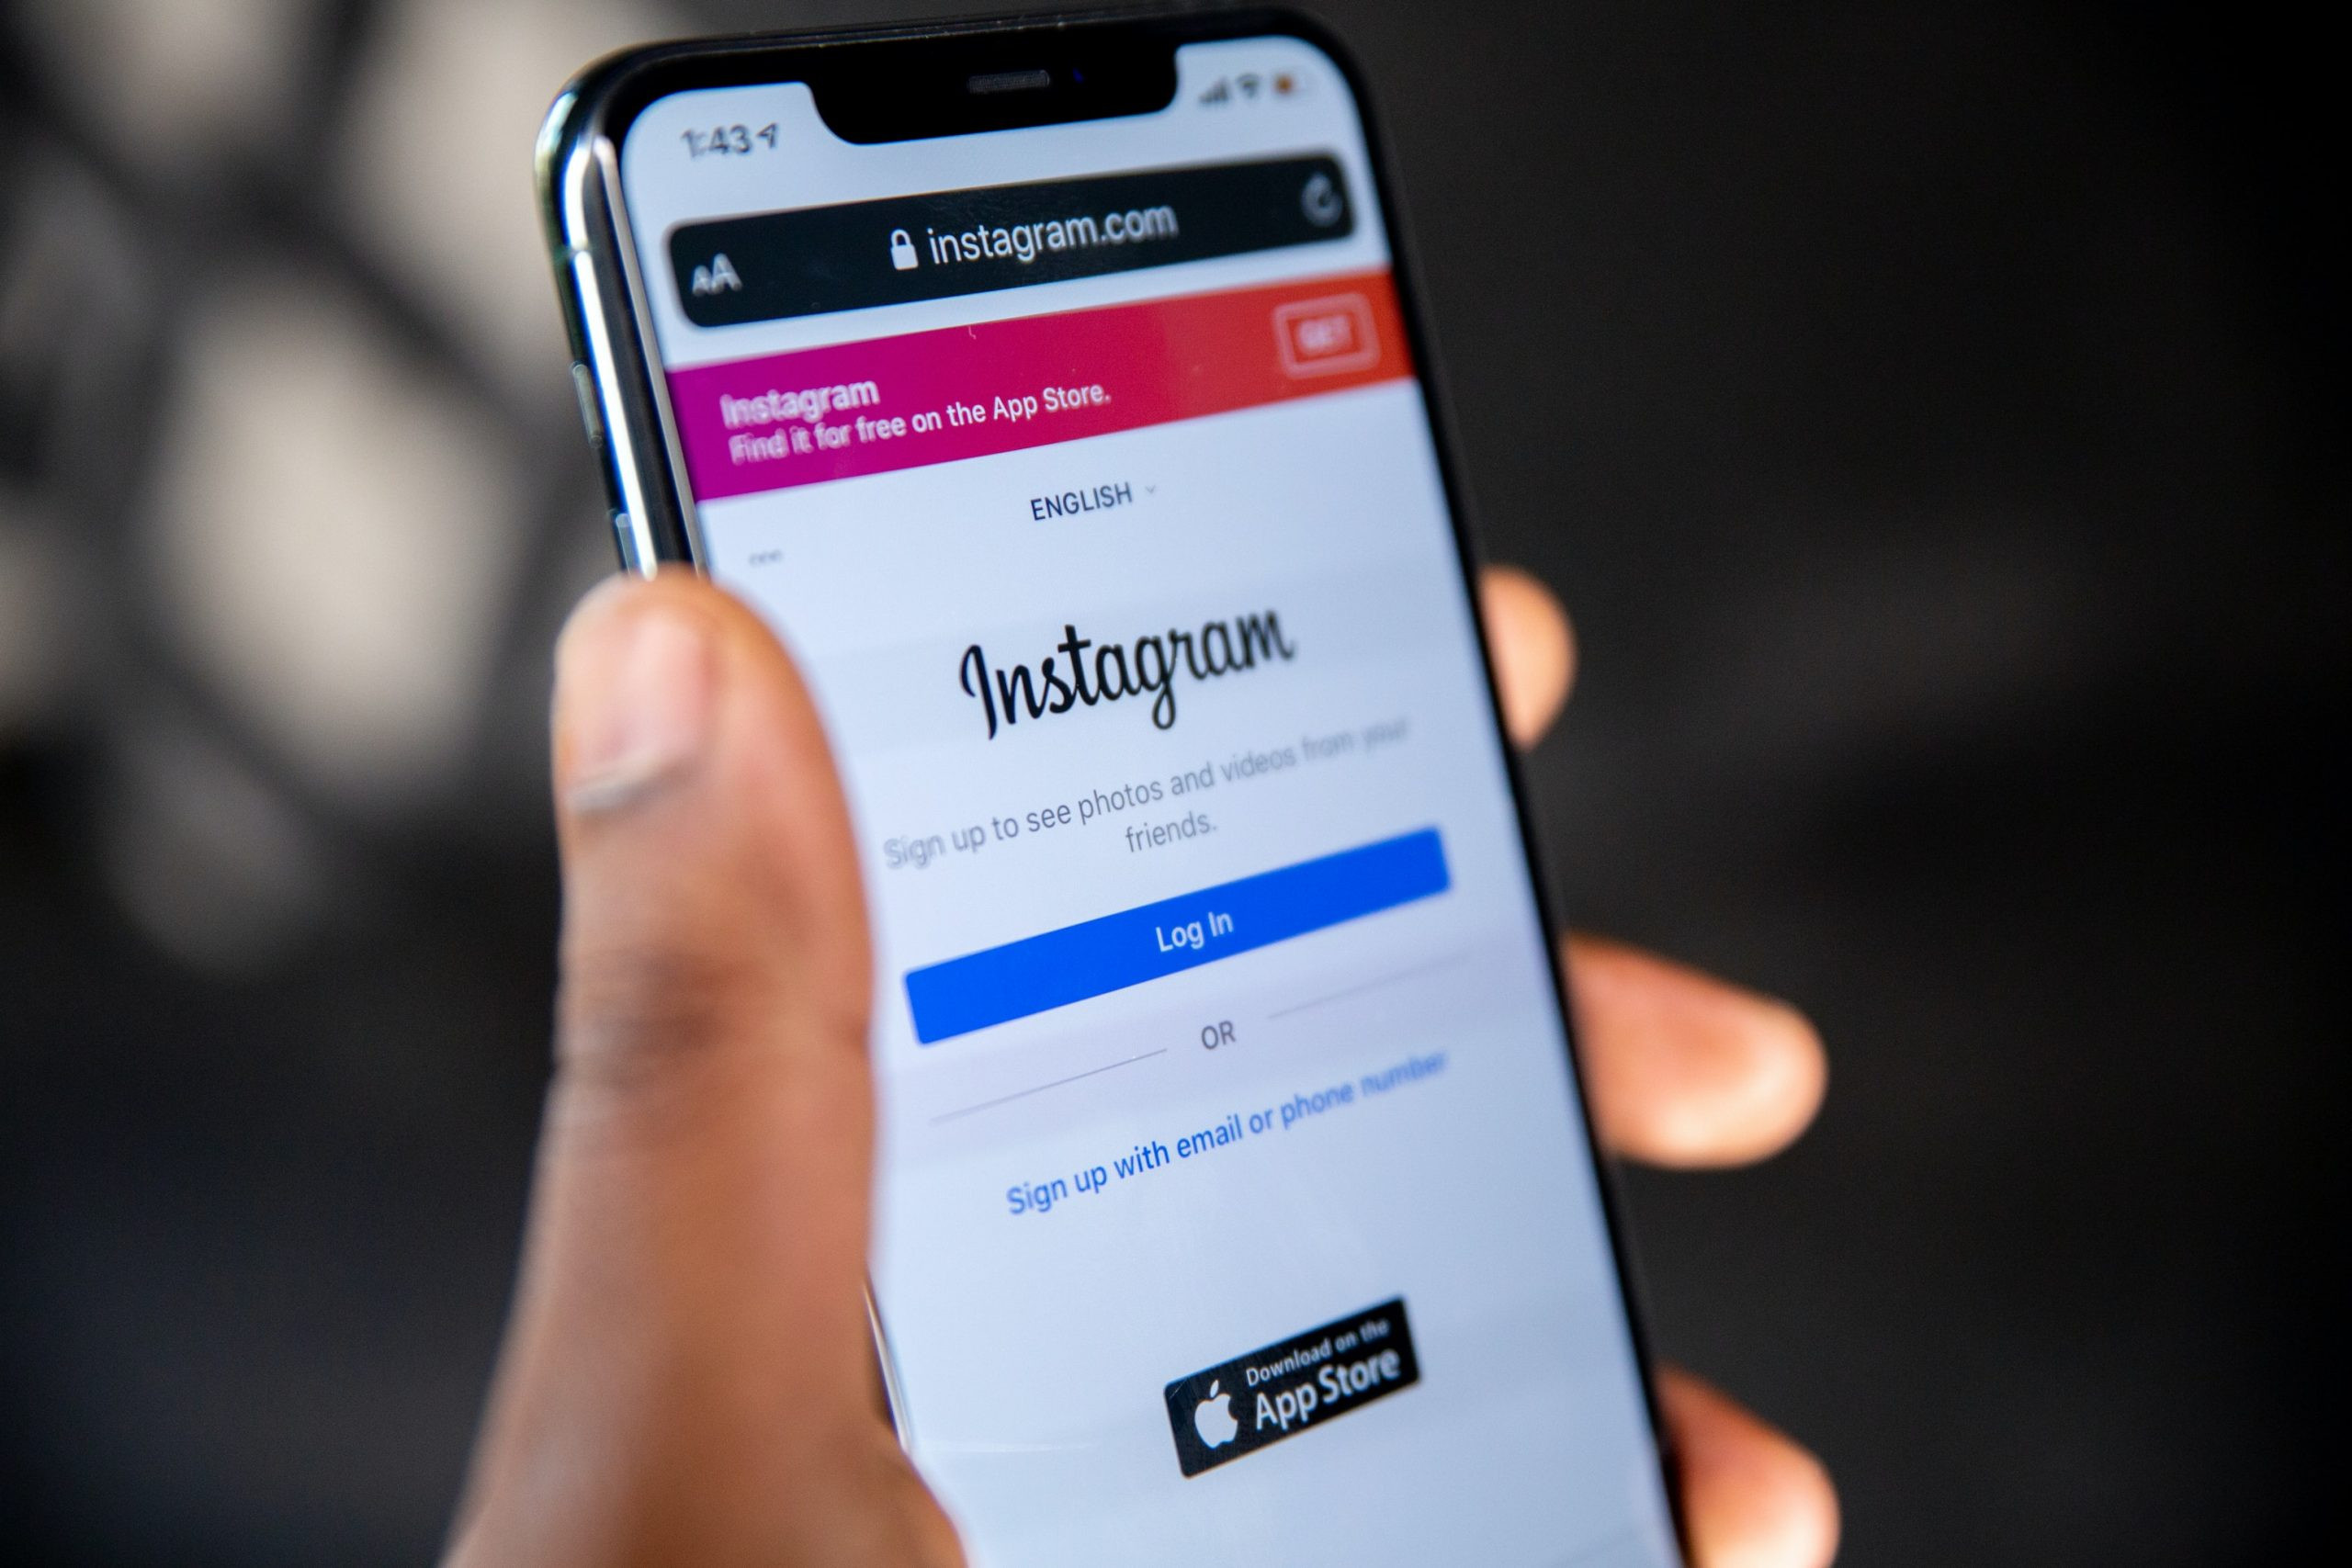 Will Buying Instagram Followers Get Your Account Banned?